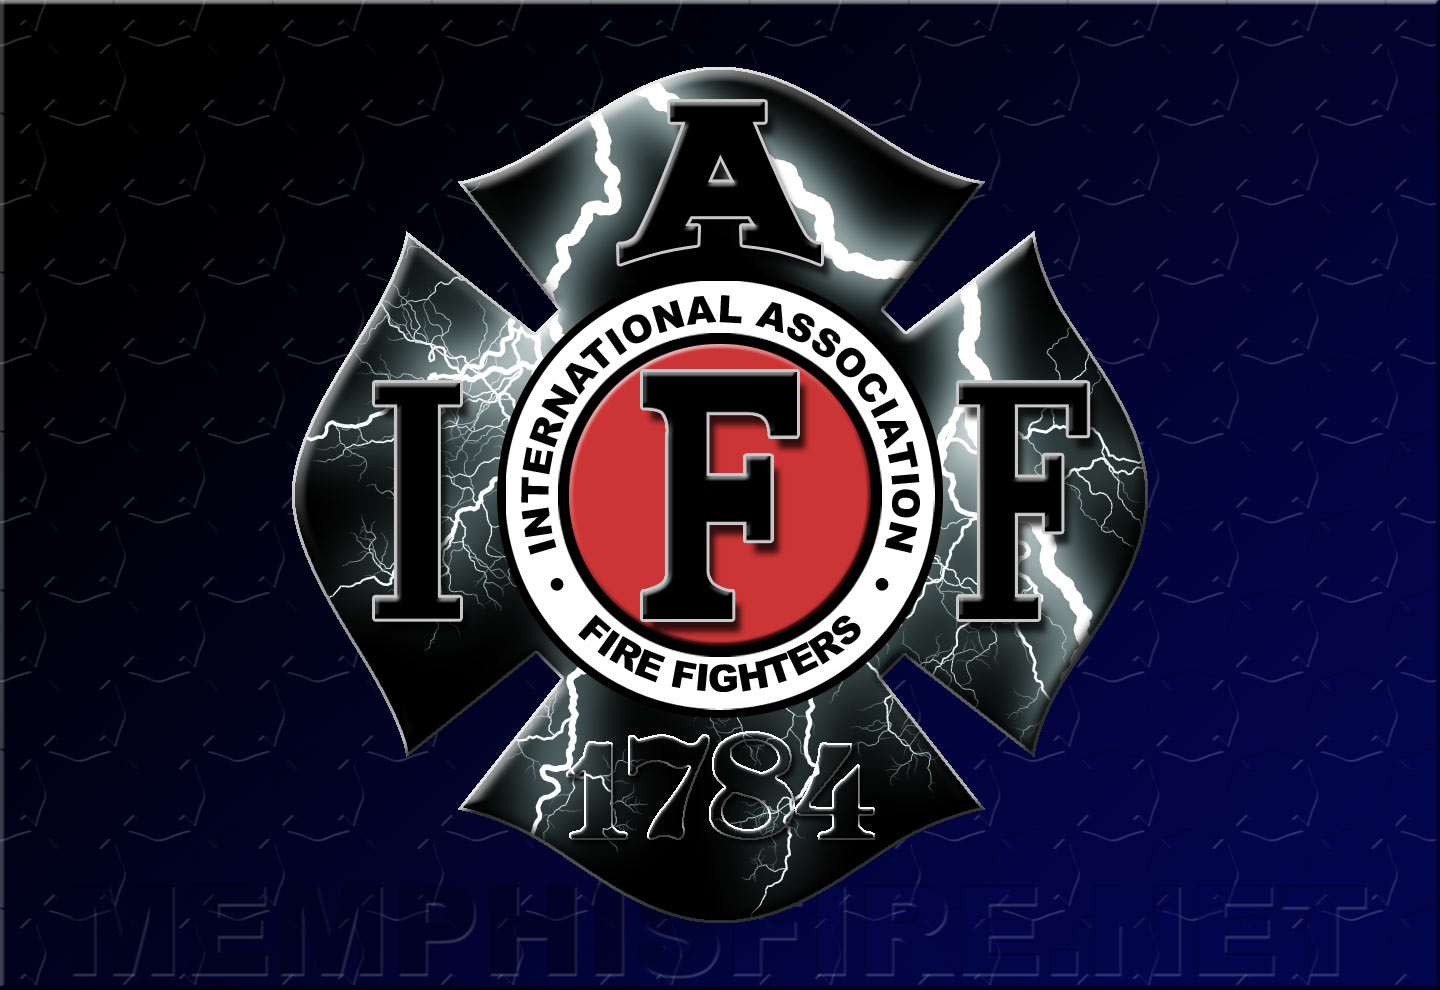 Pin Firefighter Wallpaper Desktop Image Search Results 1440x990